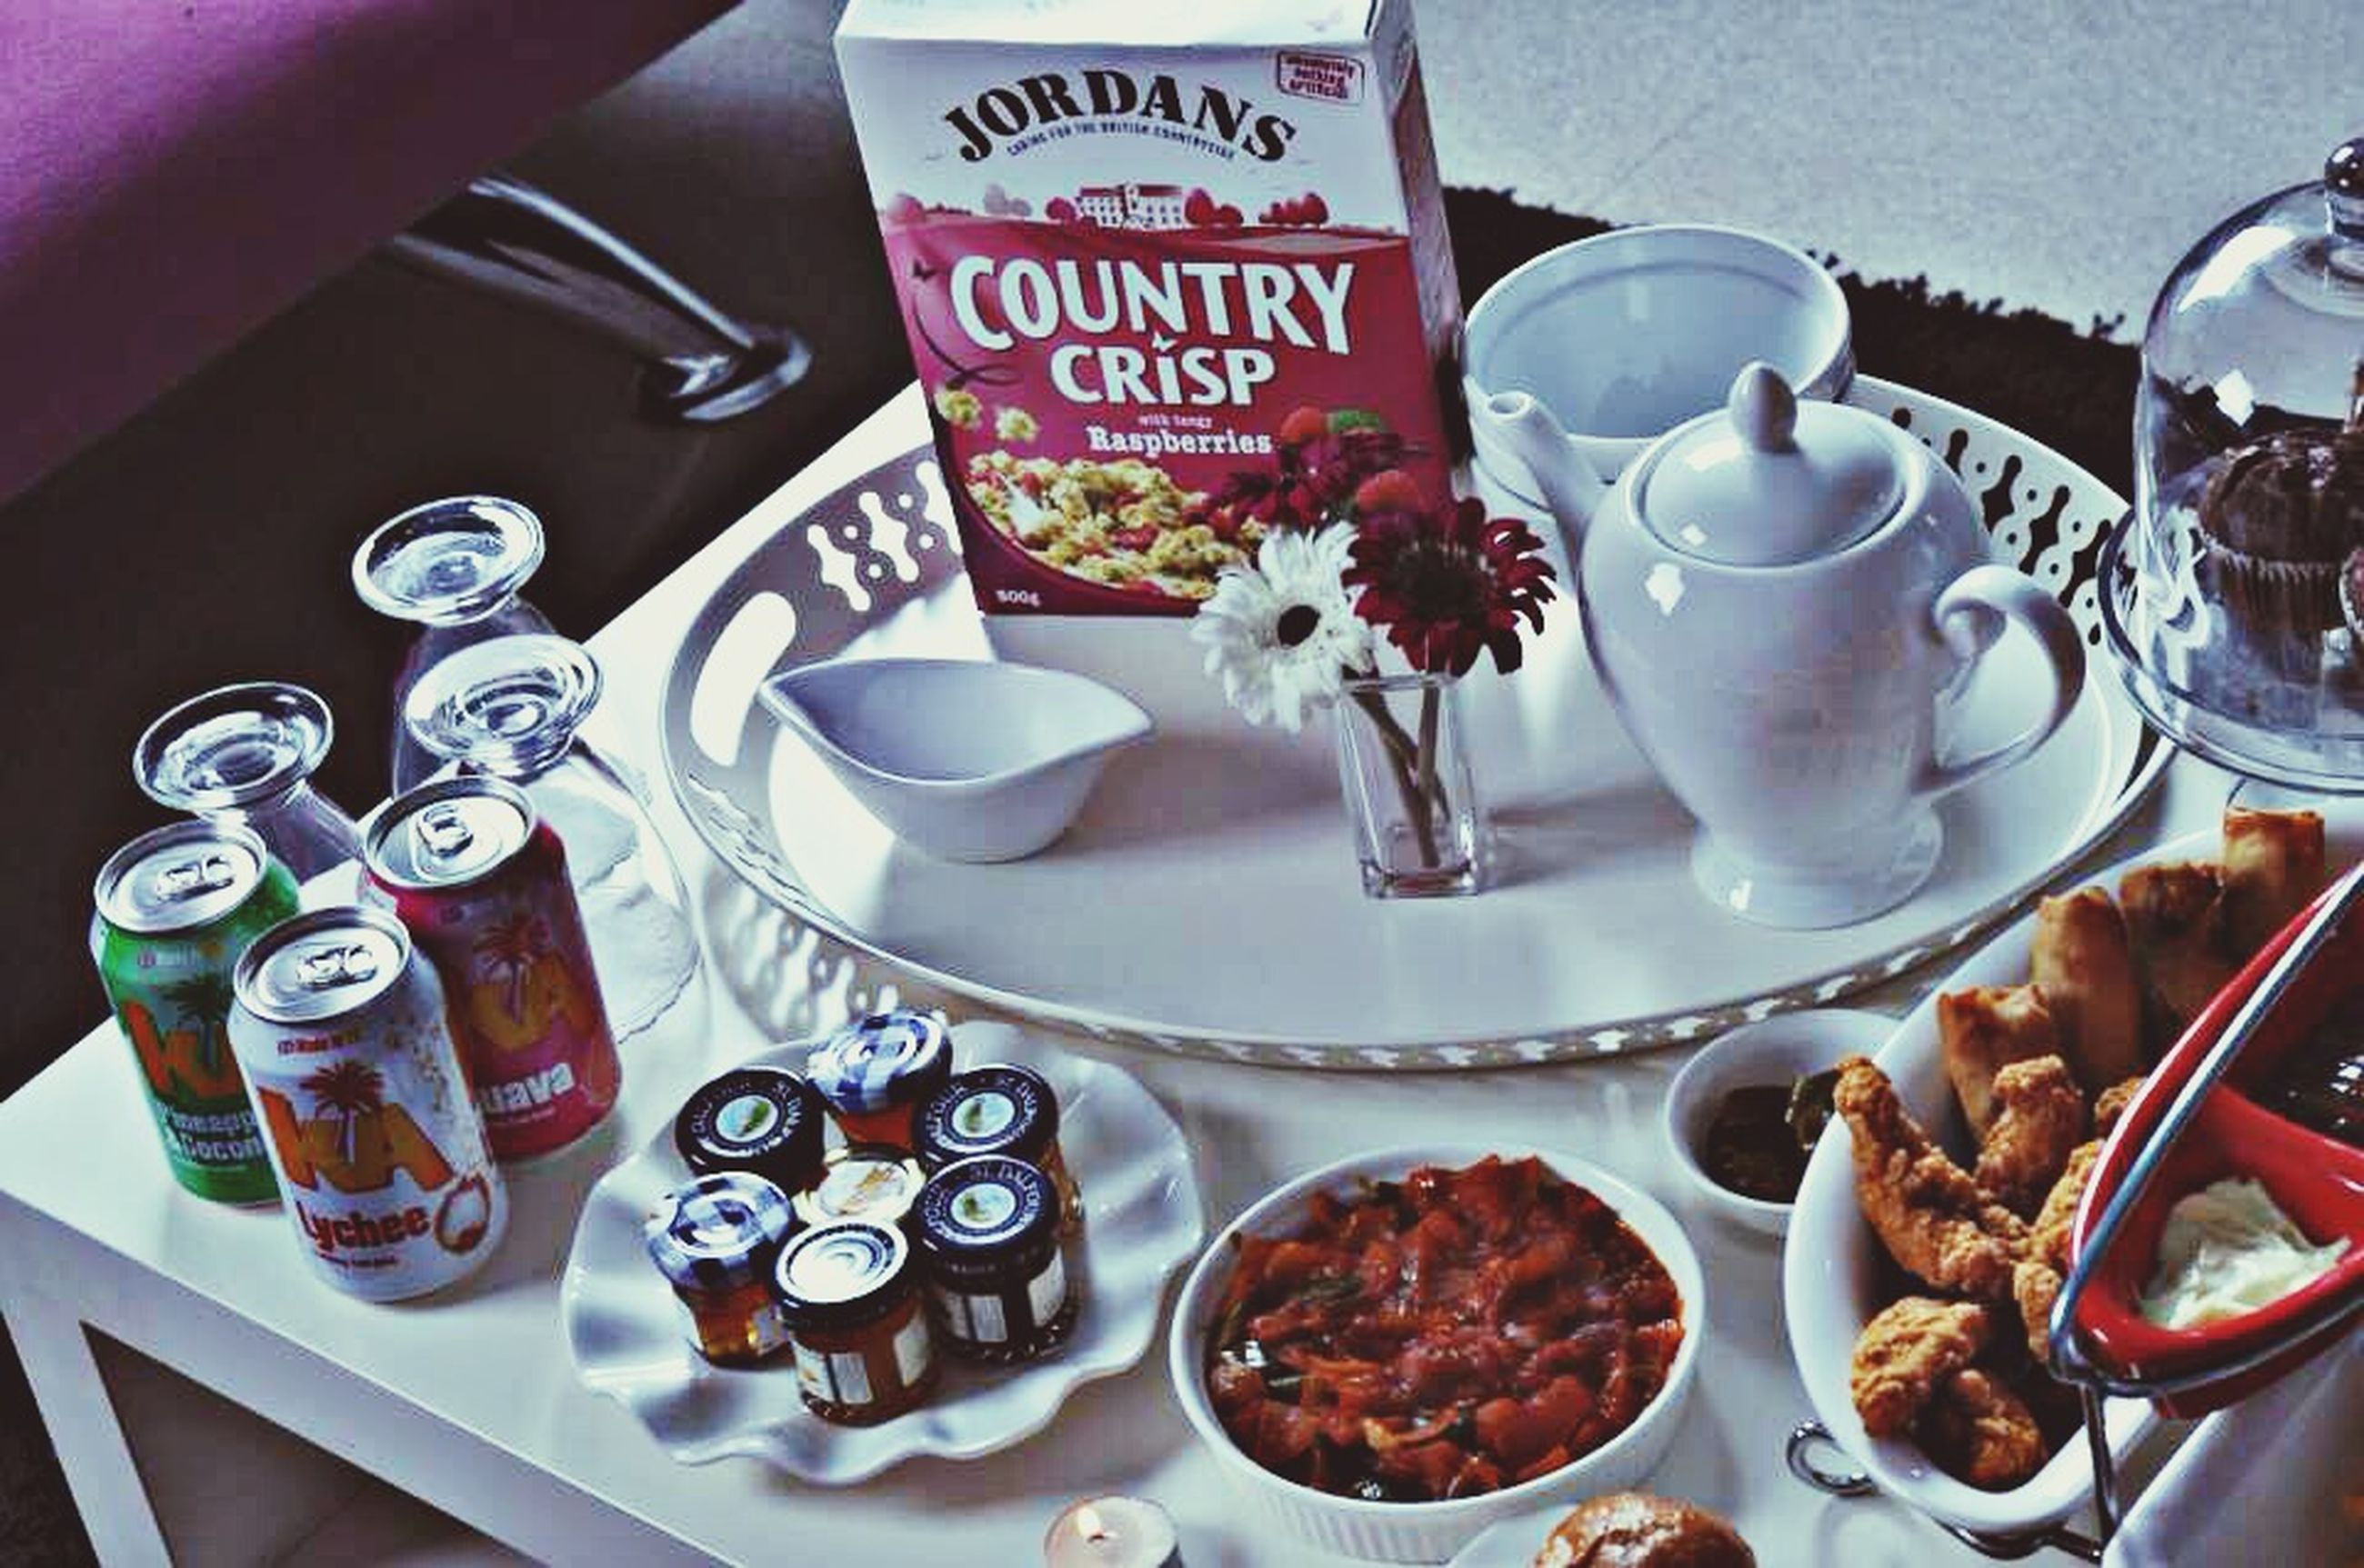 food and drink, indoors, freshness, drink, still life, food, table, coffee cup, plate, refreshment, text, western script, coffee - drink, high angle view, saucer, communication, spoon, healthy eating, ready-to-eat, sweet food